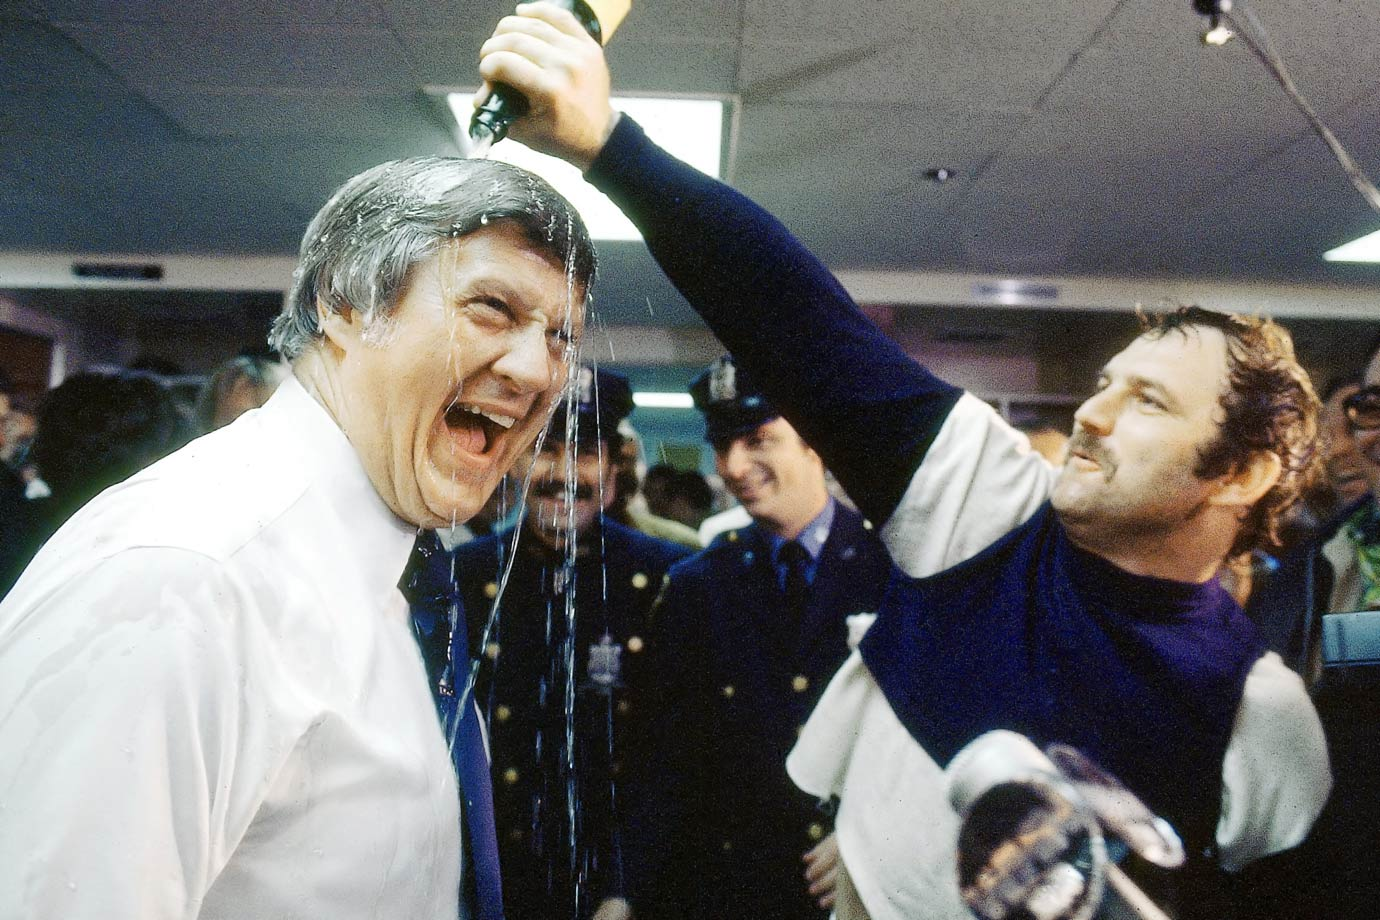 Thurman Munson pours champagne over George Steinbrenner's head after the Yankees won Game 6 and the World Series against the Los Angeles Dodgers on Oct. 18, 1977 at Yankee Stadium in Bronx, N.Y.